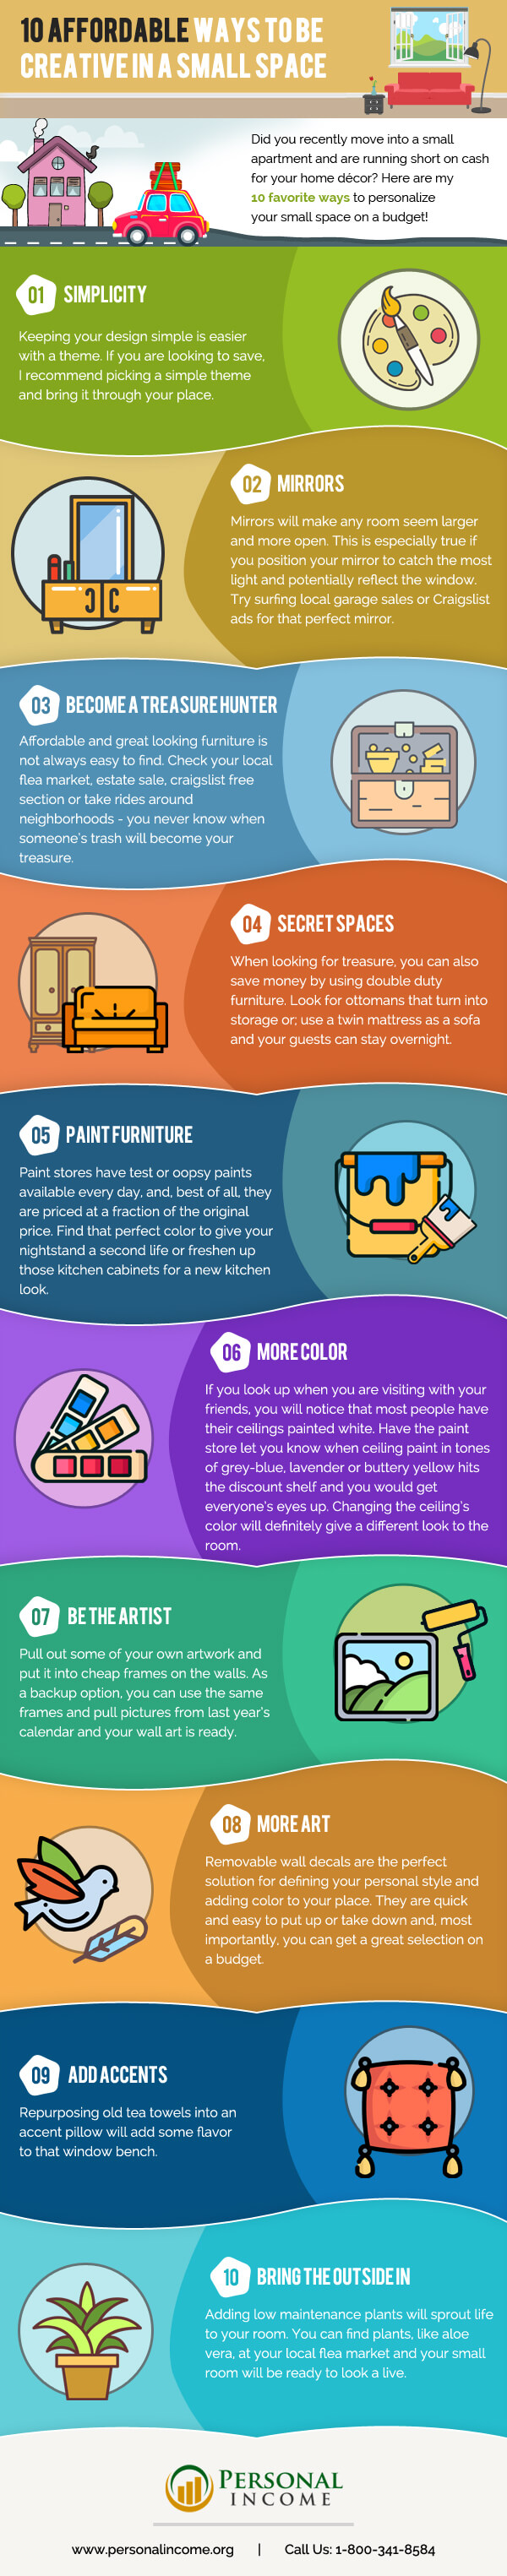 10 Easy-On-the-Pocket and Super Creative Ways to Decorate Small Spaces - Infographic